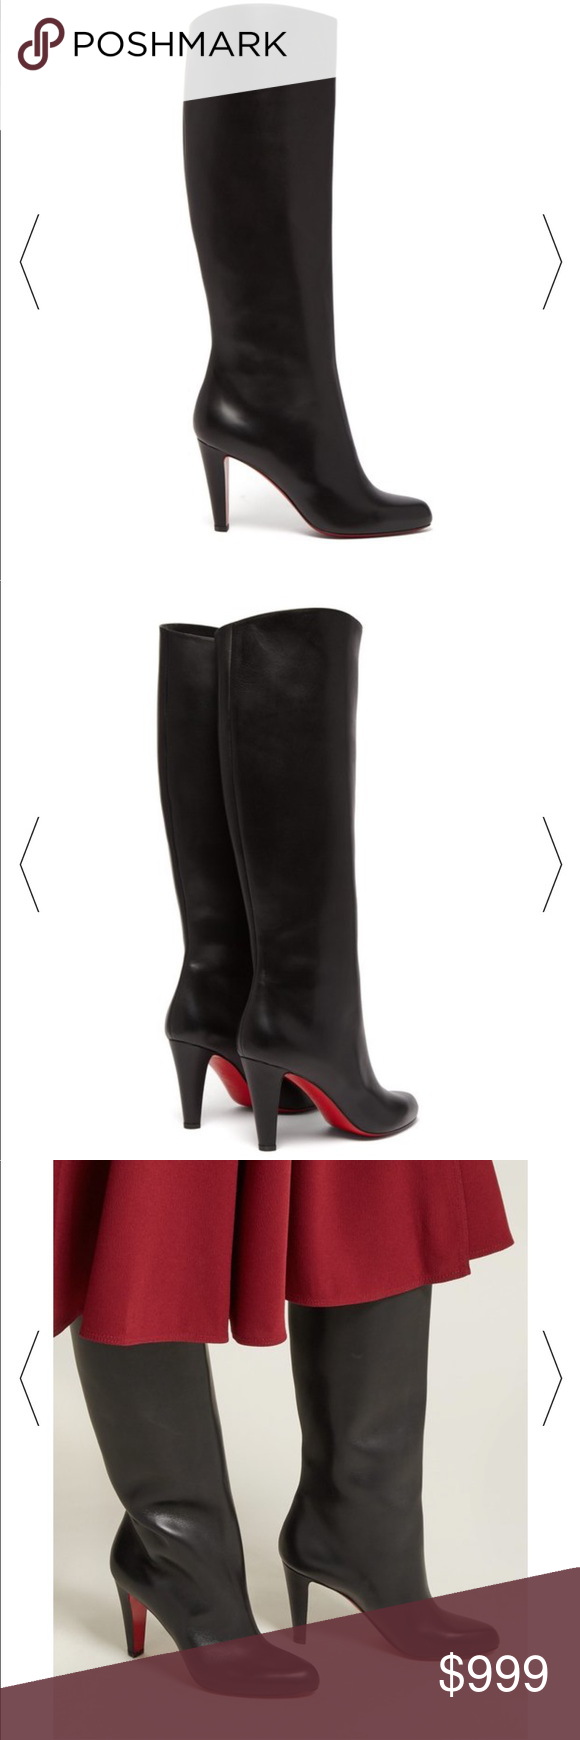 best cheap 6199b f64a5 Christian Louboutin Marmara knee high boot Sz 81/2 Anyone ...